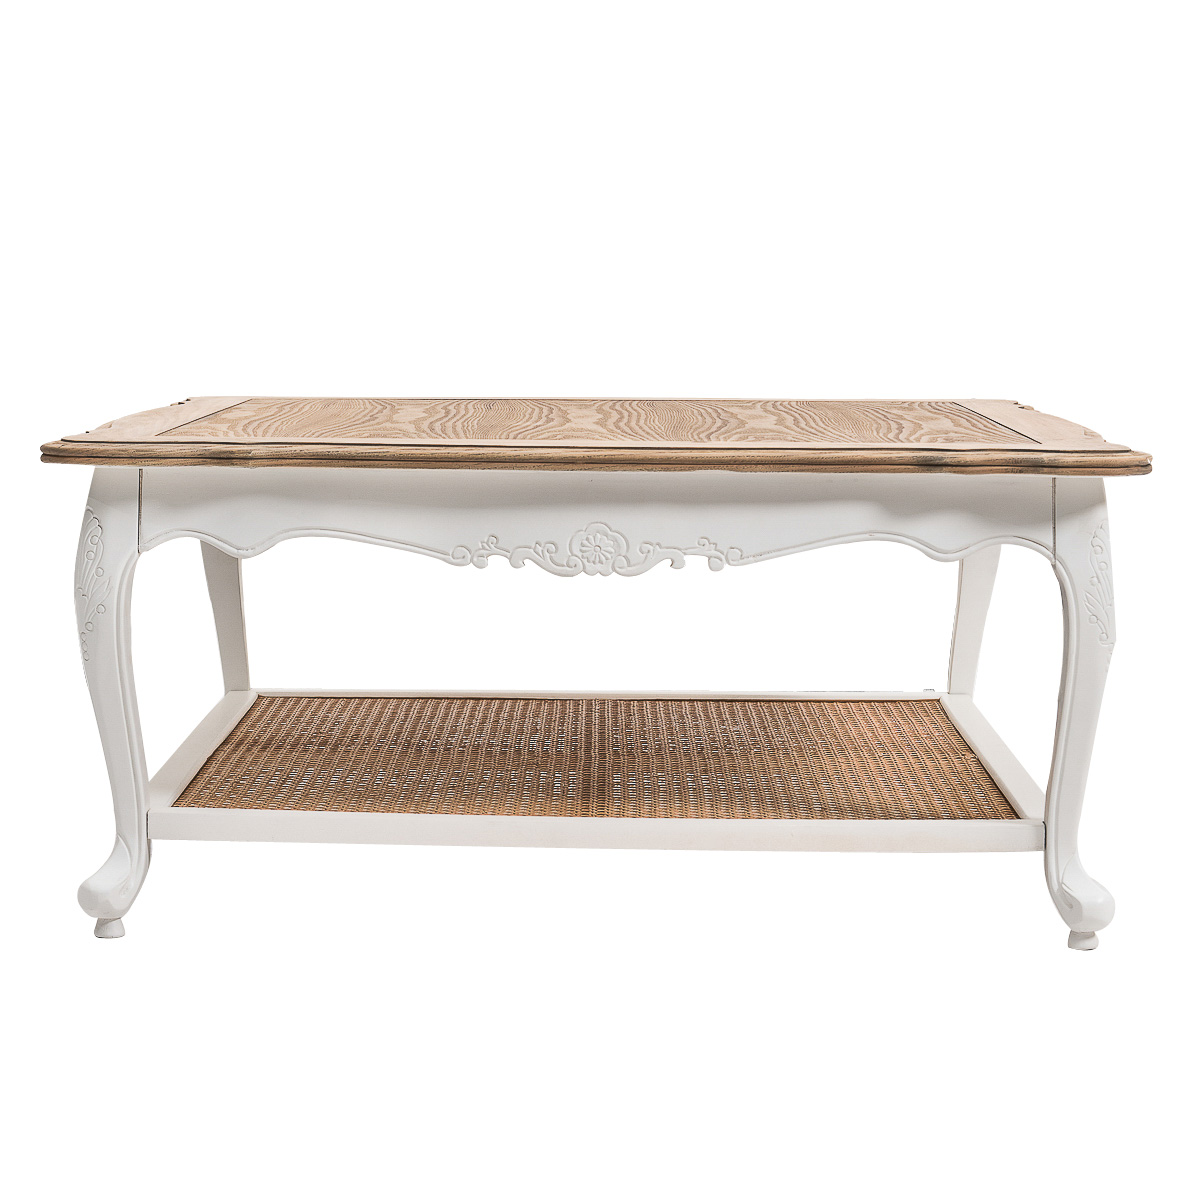 Vintage French Provincial Coffee Table: French Provincial Furniture Classic Vintage COFFEE TEA